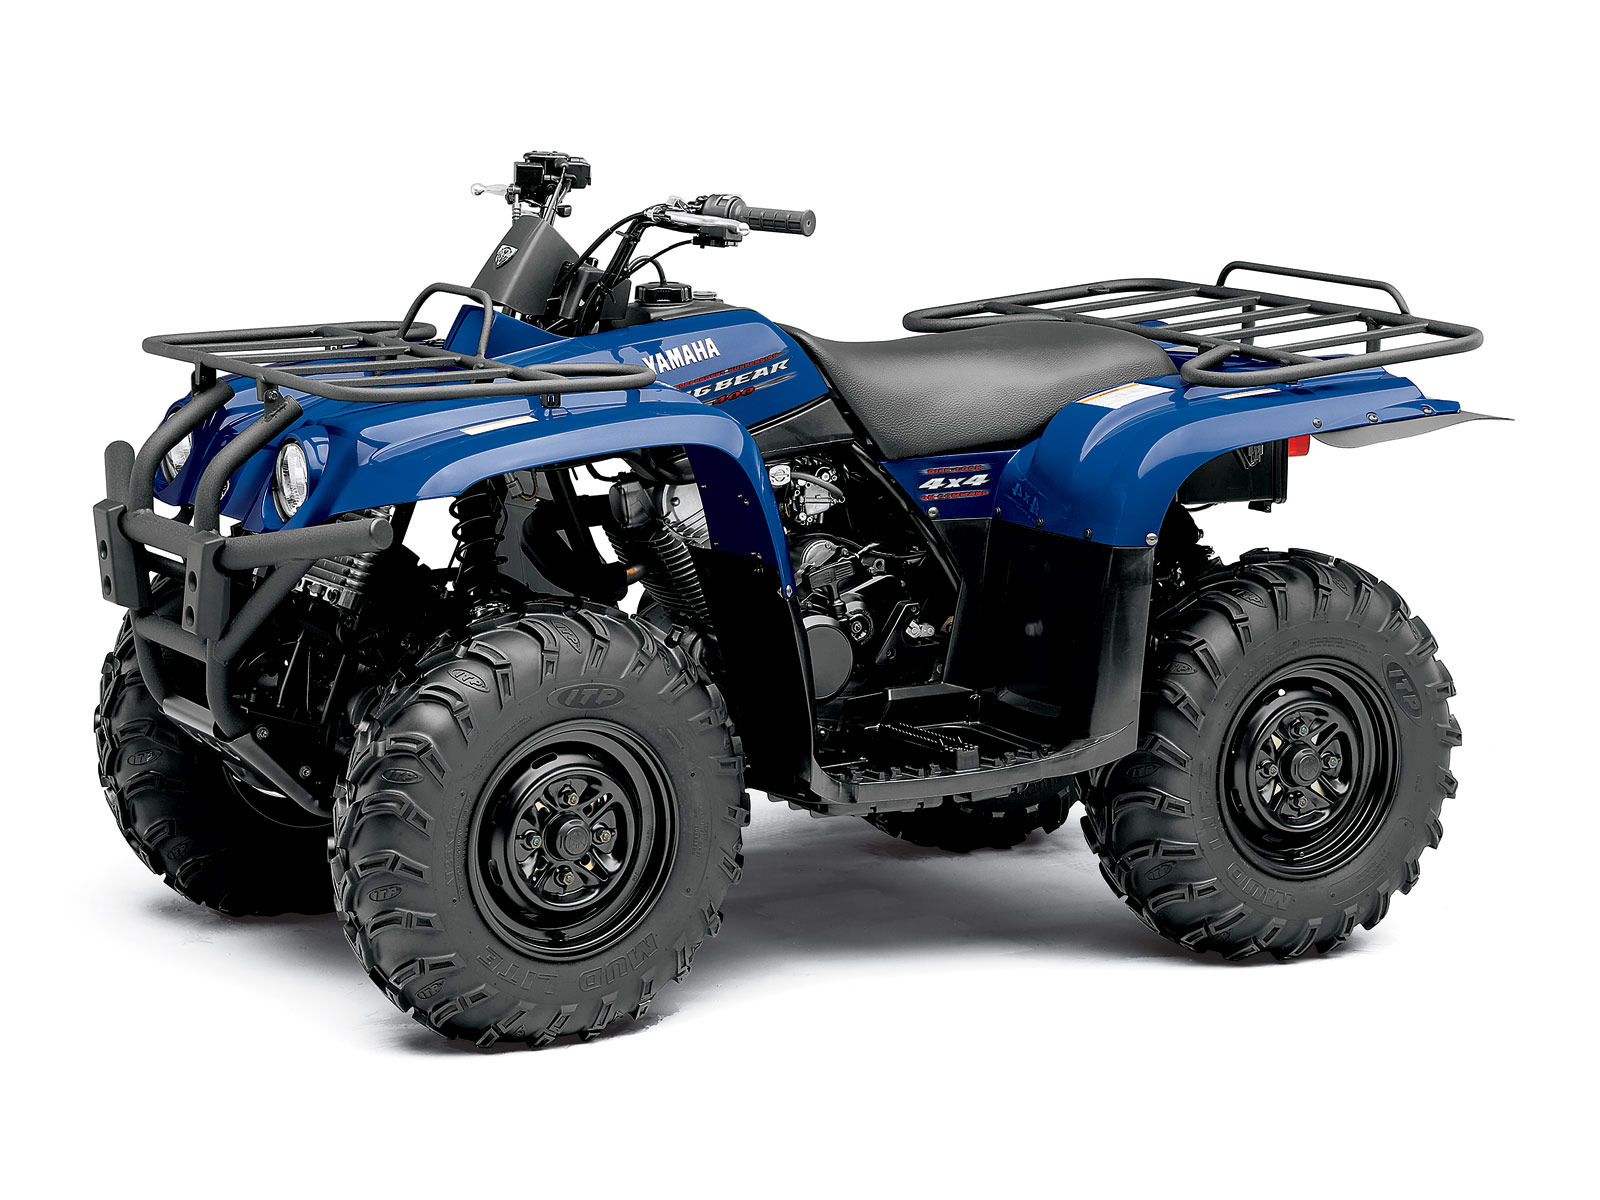 yamaha pictures 2010 big bear 400 atv specifications. Black Bedroom Furniture Sets. Home Design Ideas